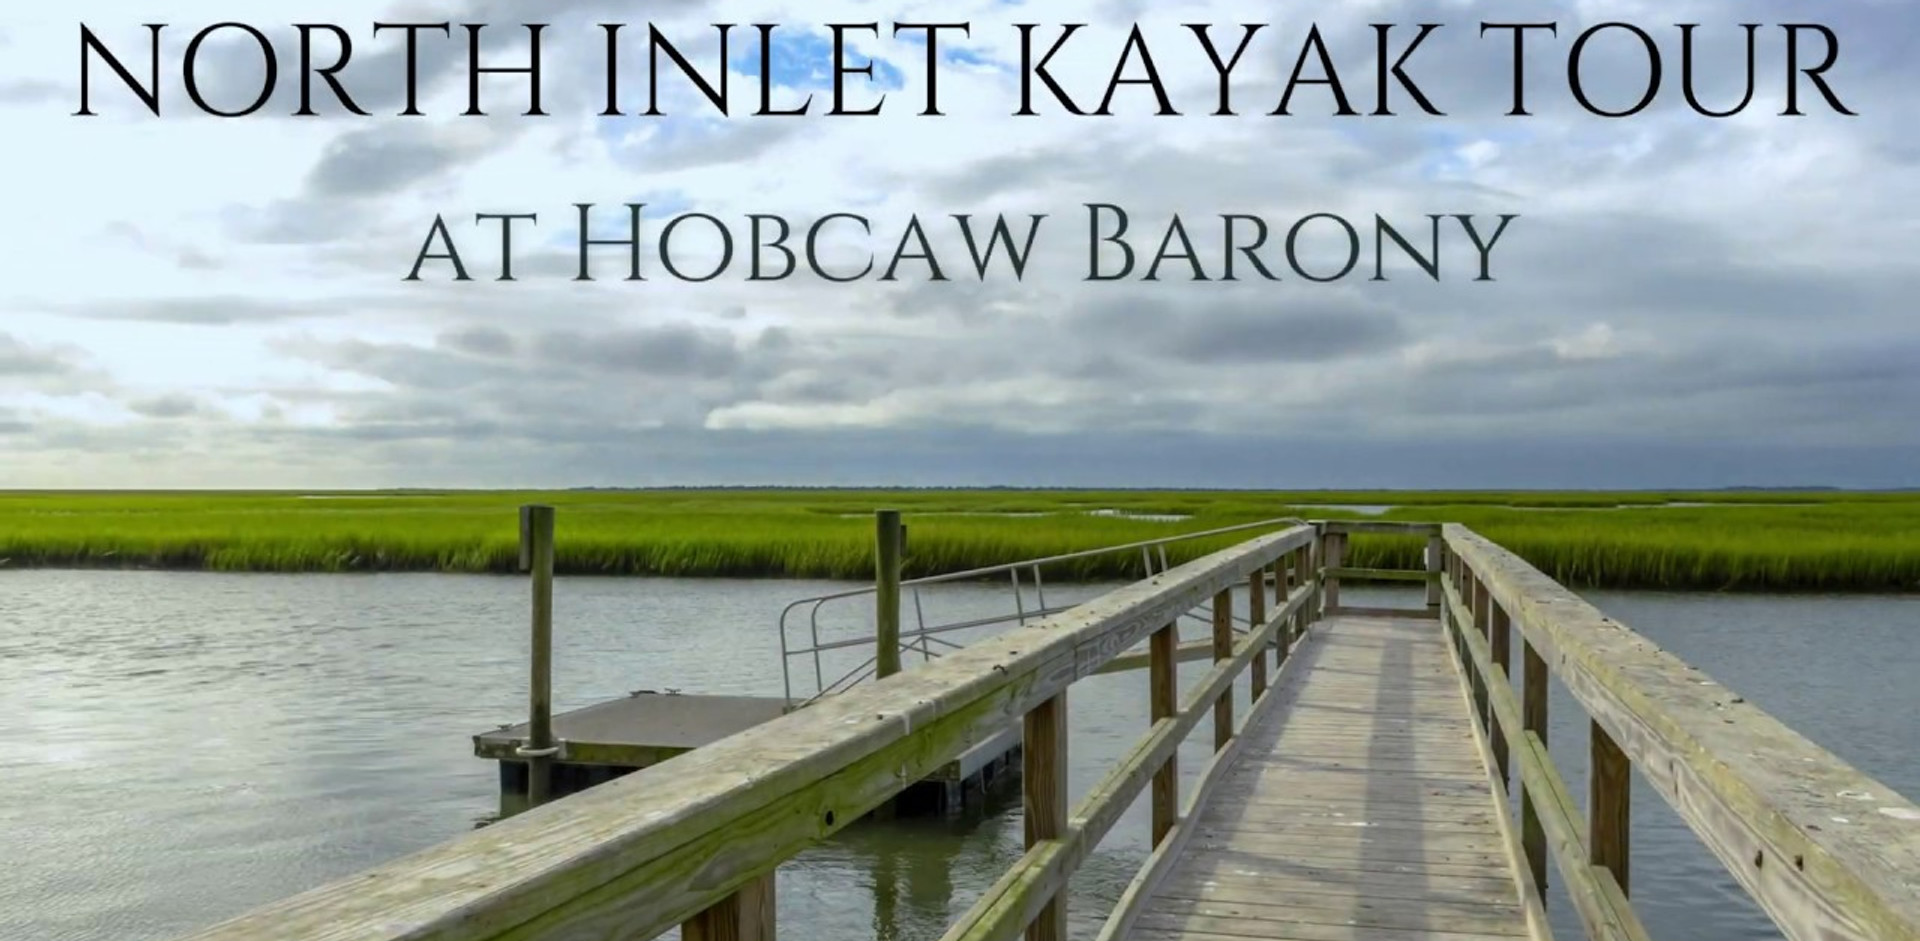 North Inlet Kayak Tour